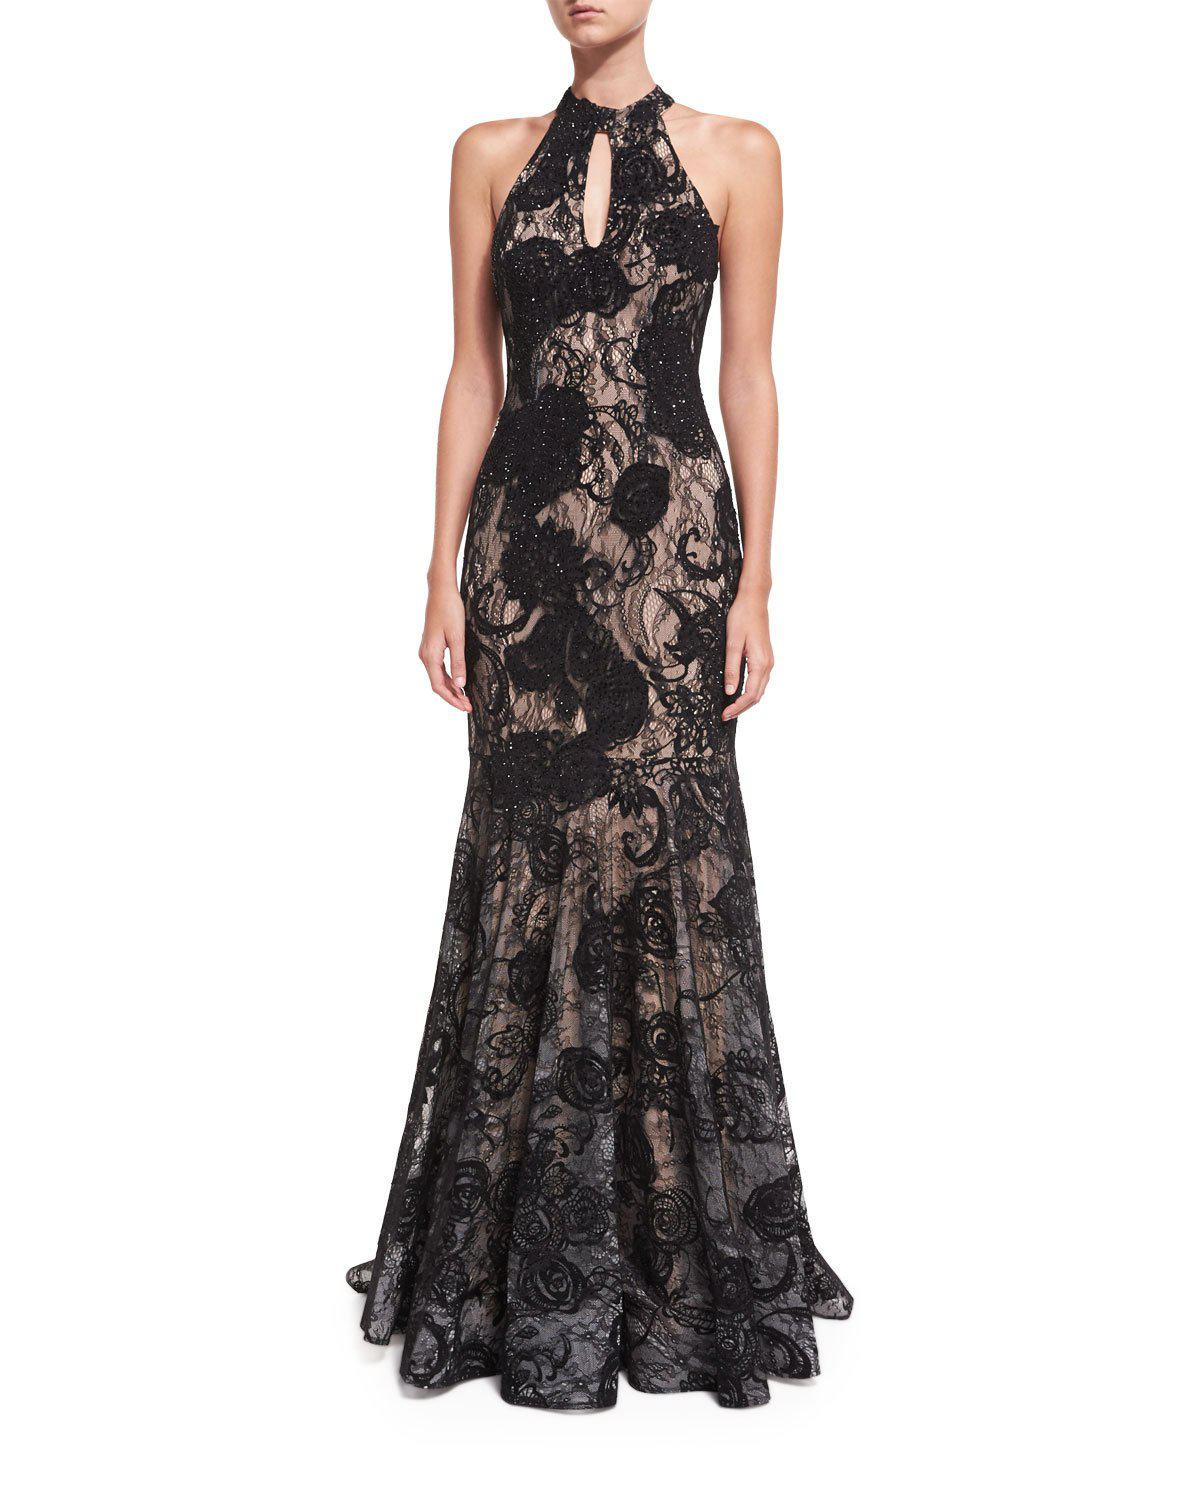 4e1850a4ae32 Jovani Floral Embellished Sleeveless Halter Evening Gown in Black - Lyst